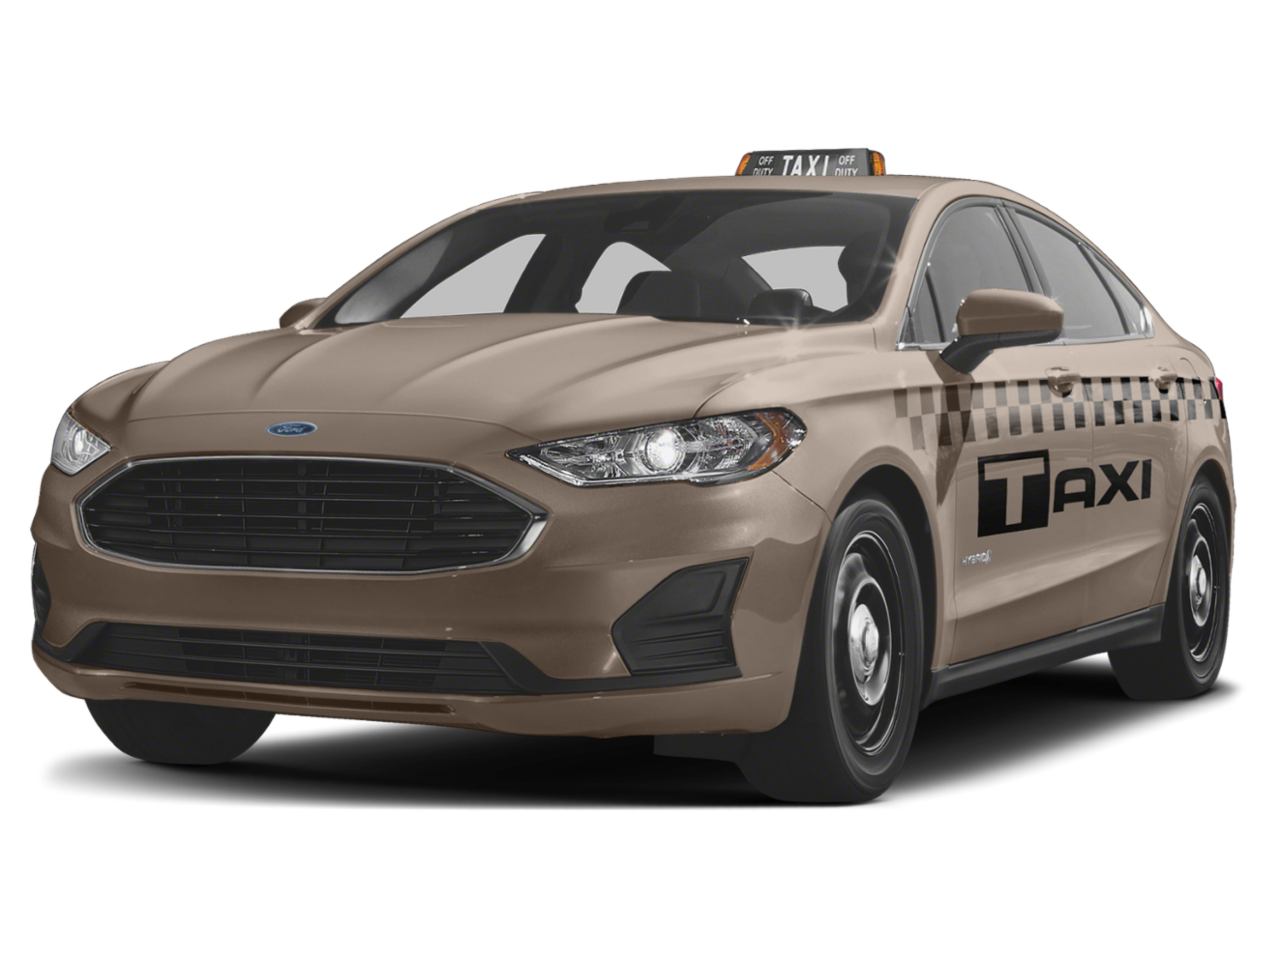 Ford 2019 Fusion Taxi FWD